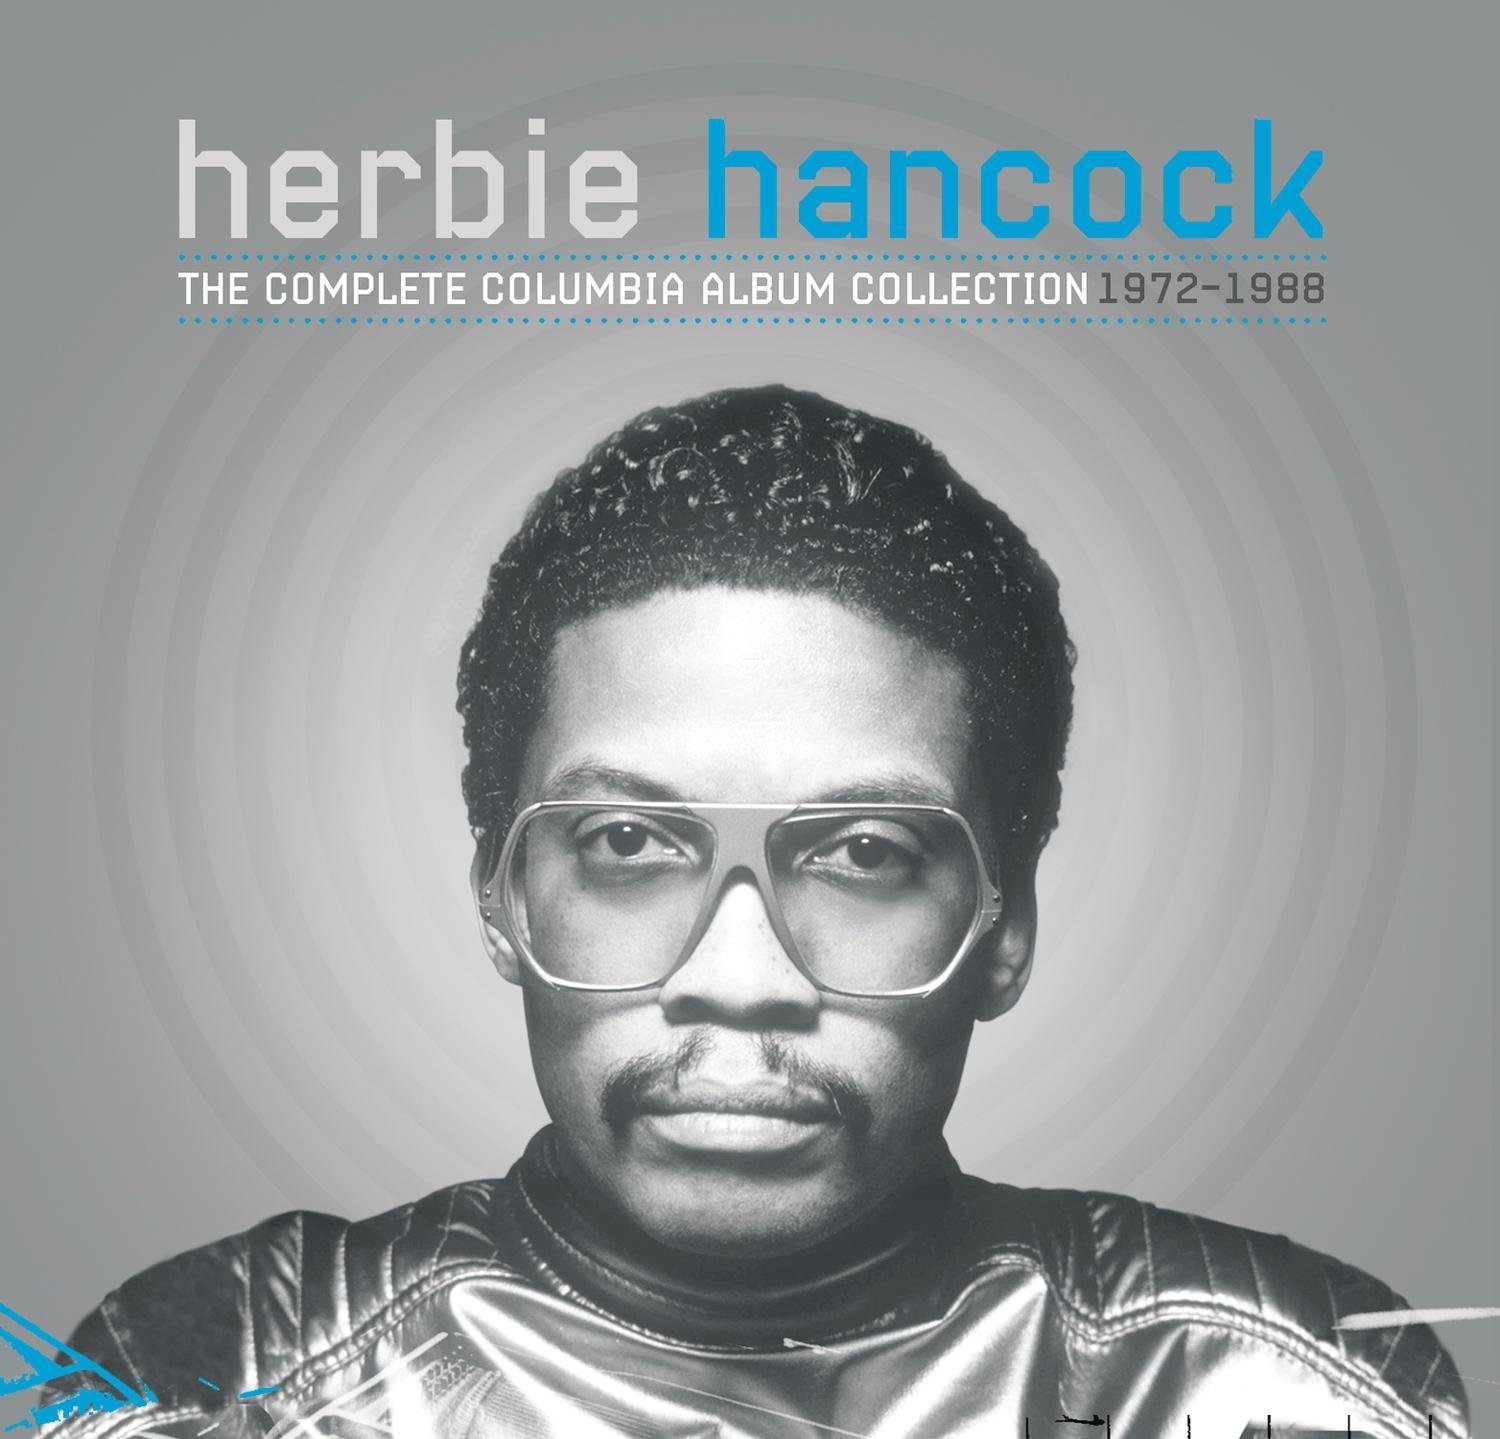 The Complete Columbia Album Collection 1972 - 1988